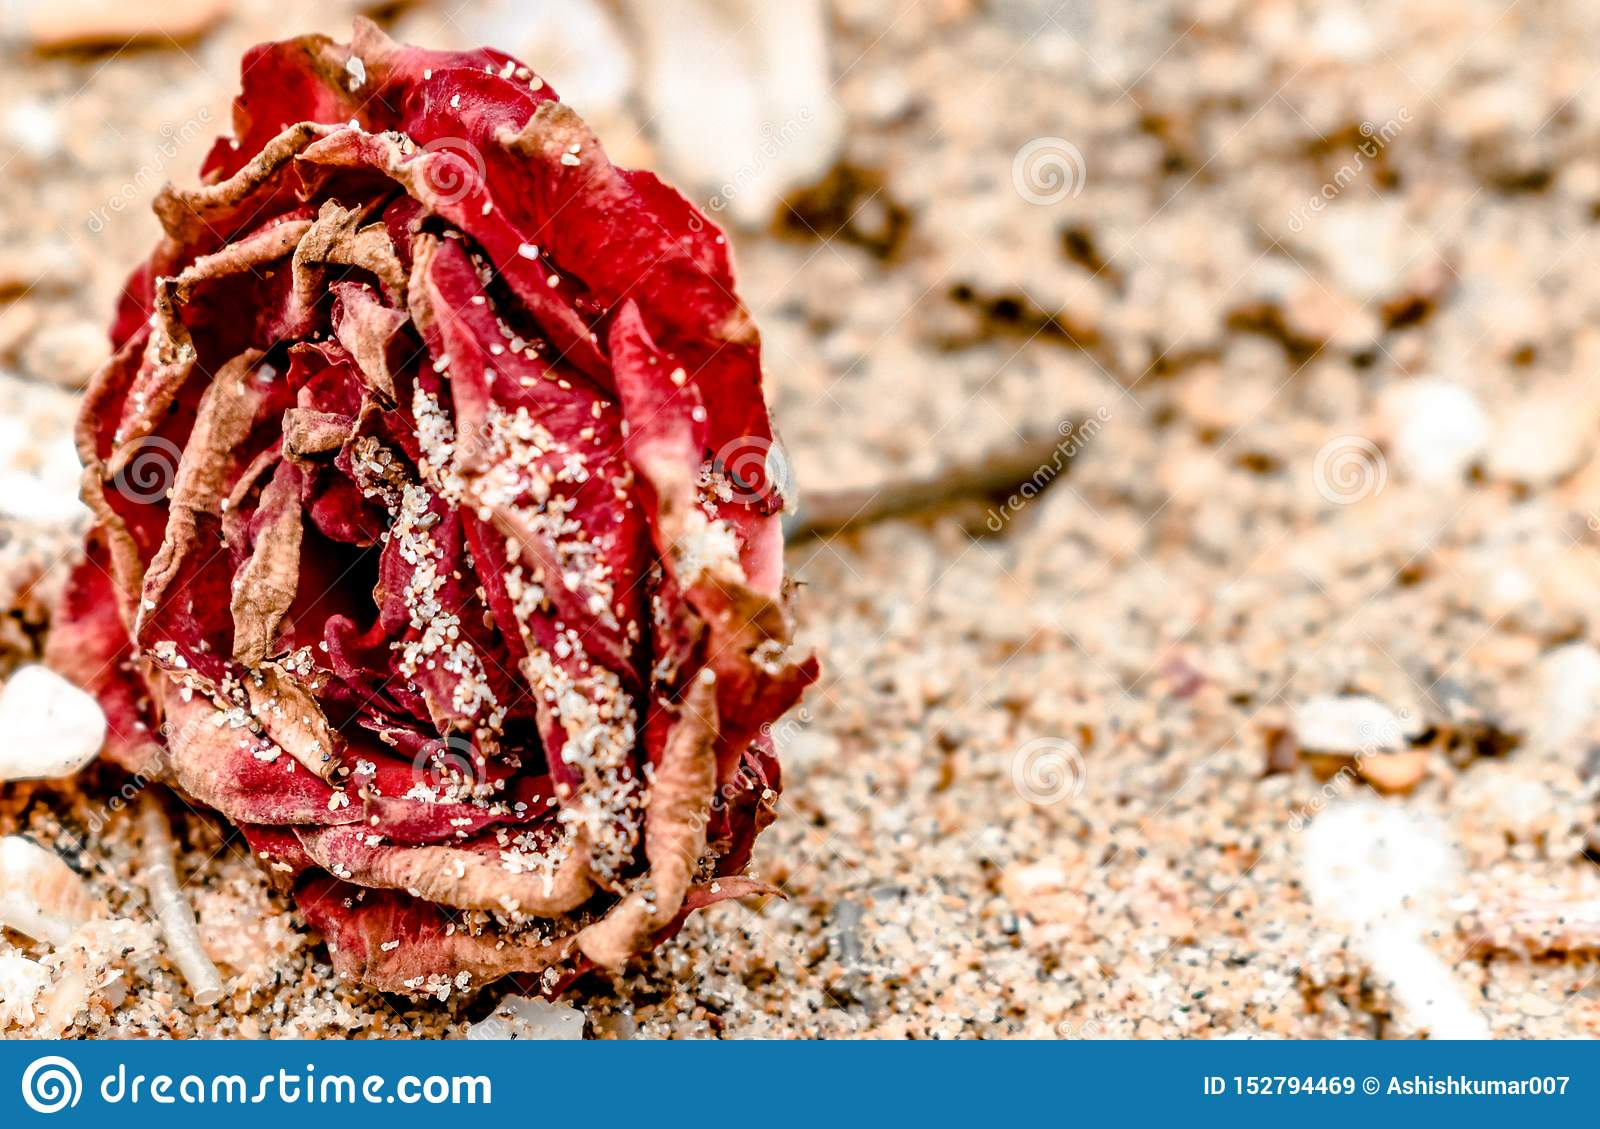 Close up of Dead Rose, red in color, all dried up and lying on the beach, with dry petals covered in sand. like rose on the grave